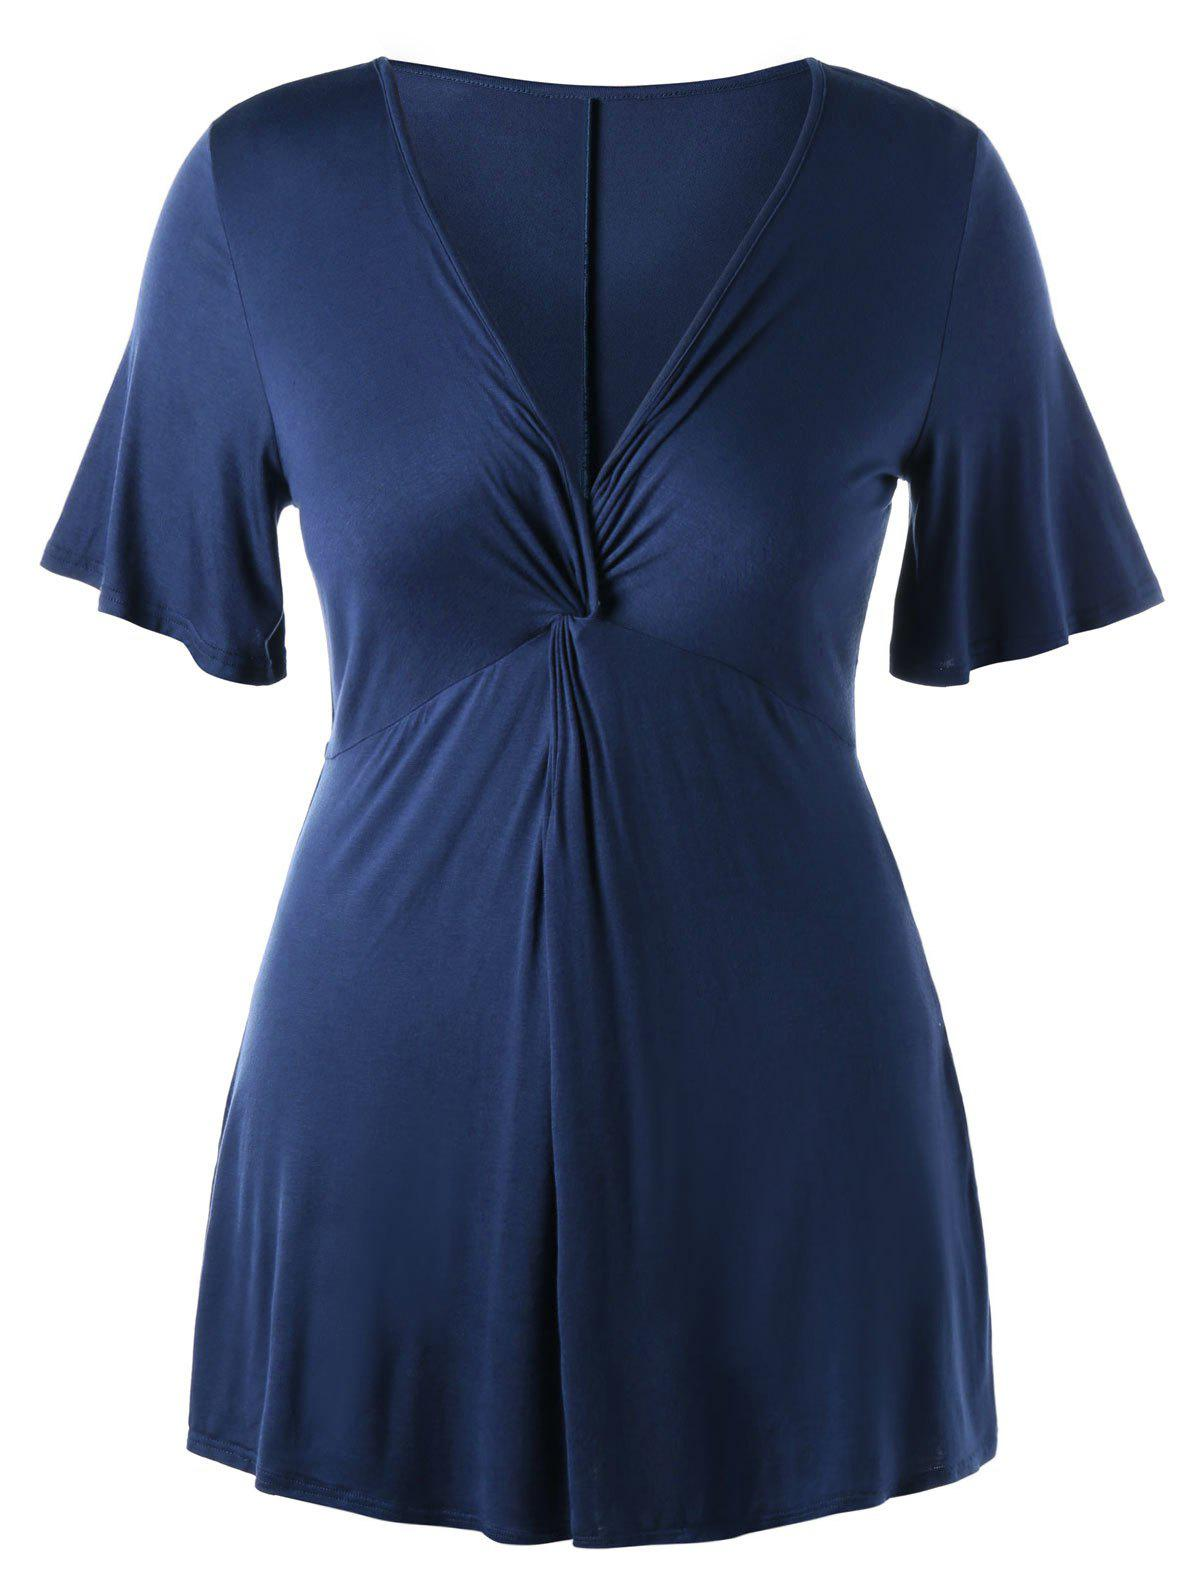 Top tunique avant Twist taille grand - Bleu Cadette 2XL